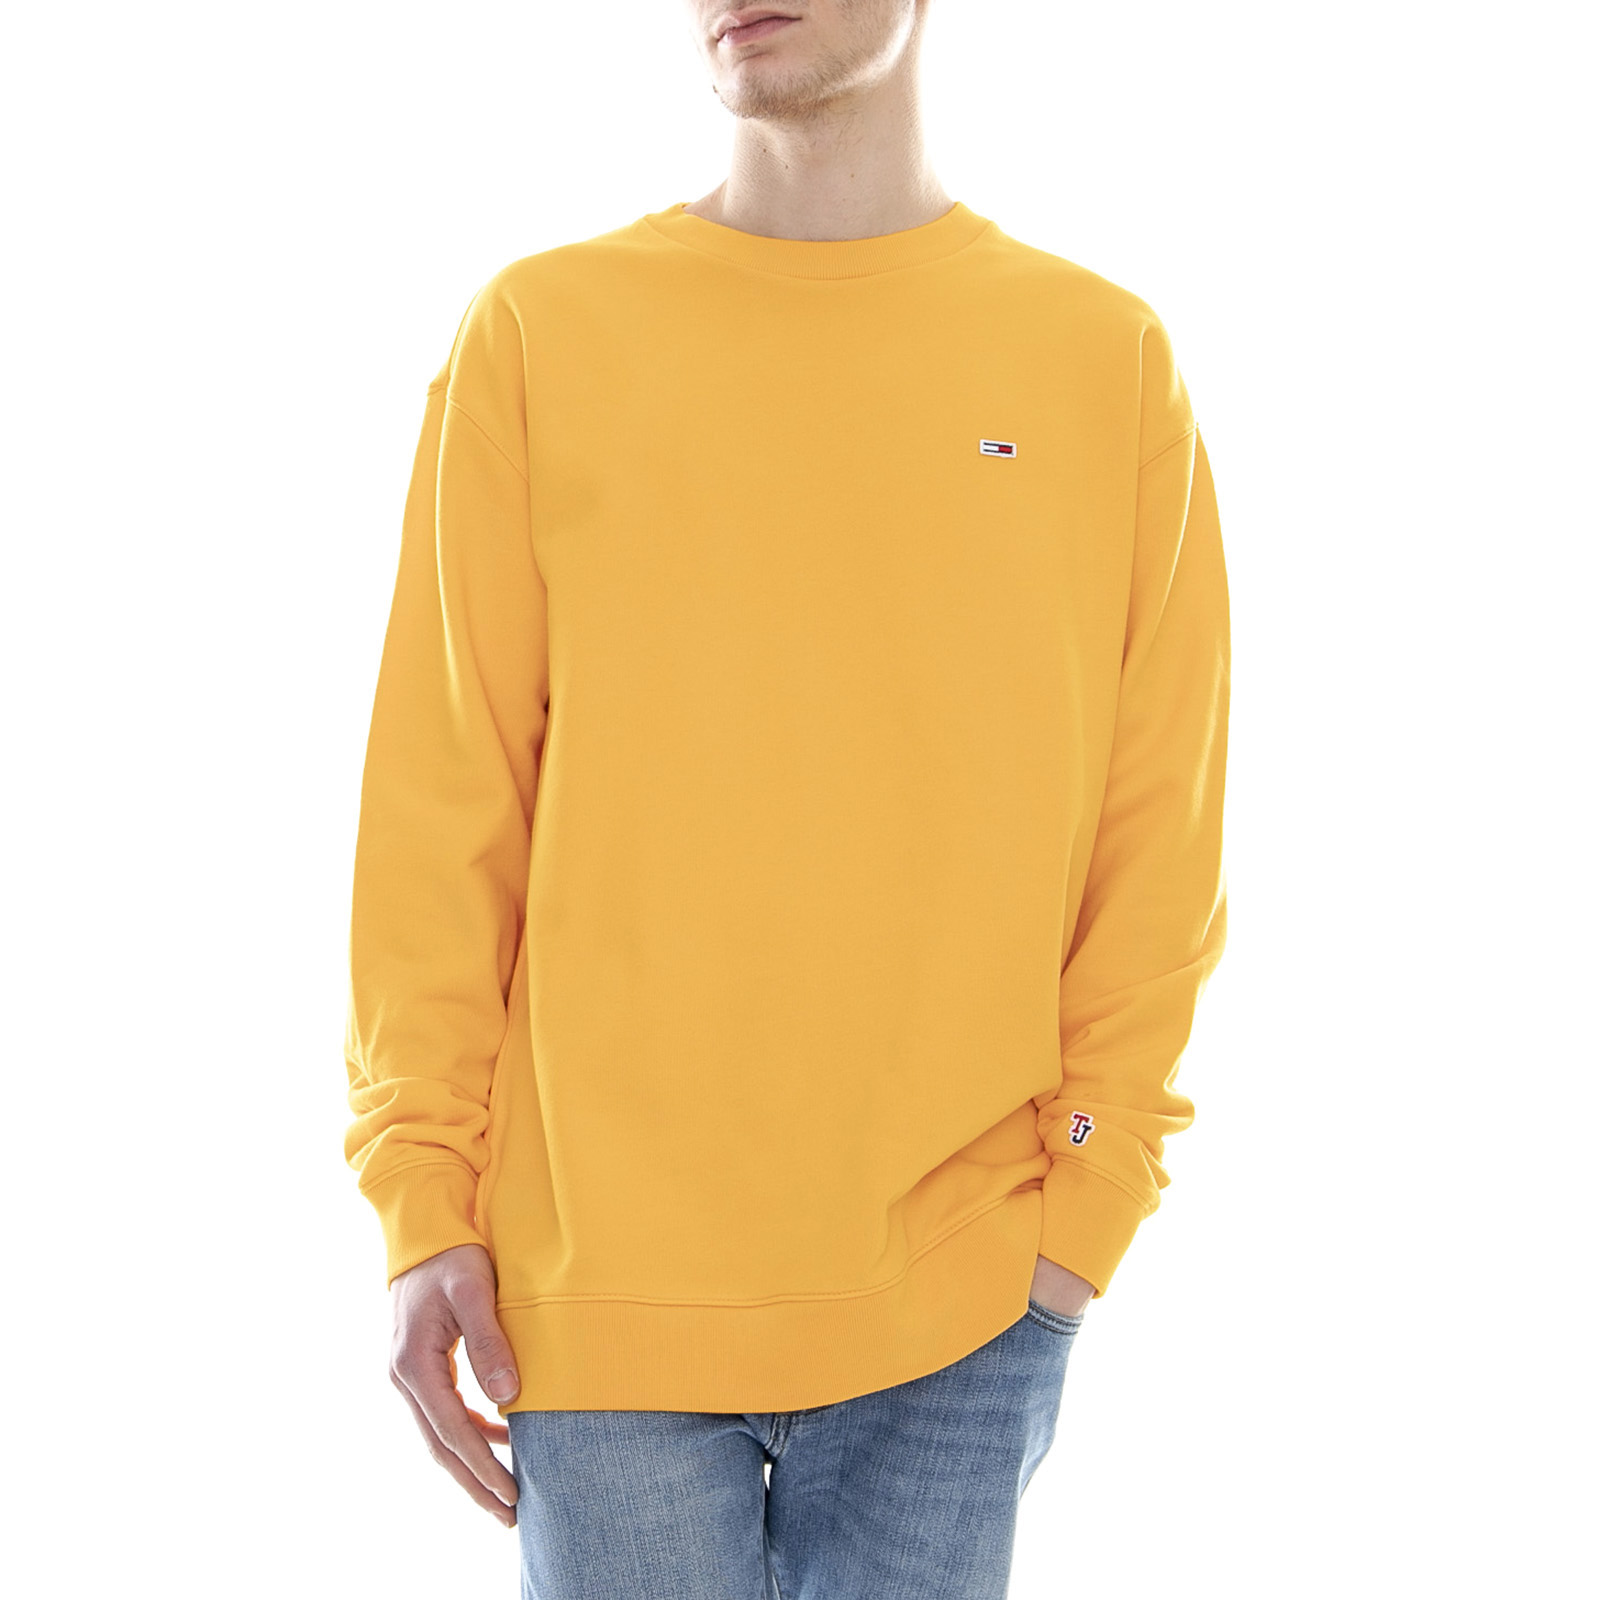 Details about Tommy Hilfiger Classics Crew Radiant Yellow Round necked Sweatshirt Man